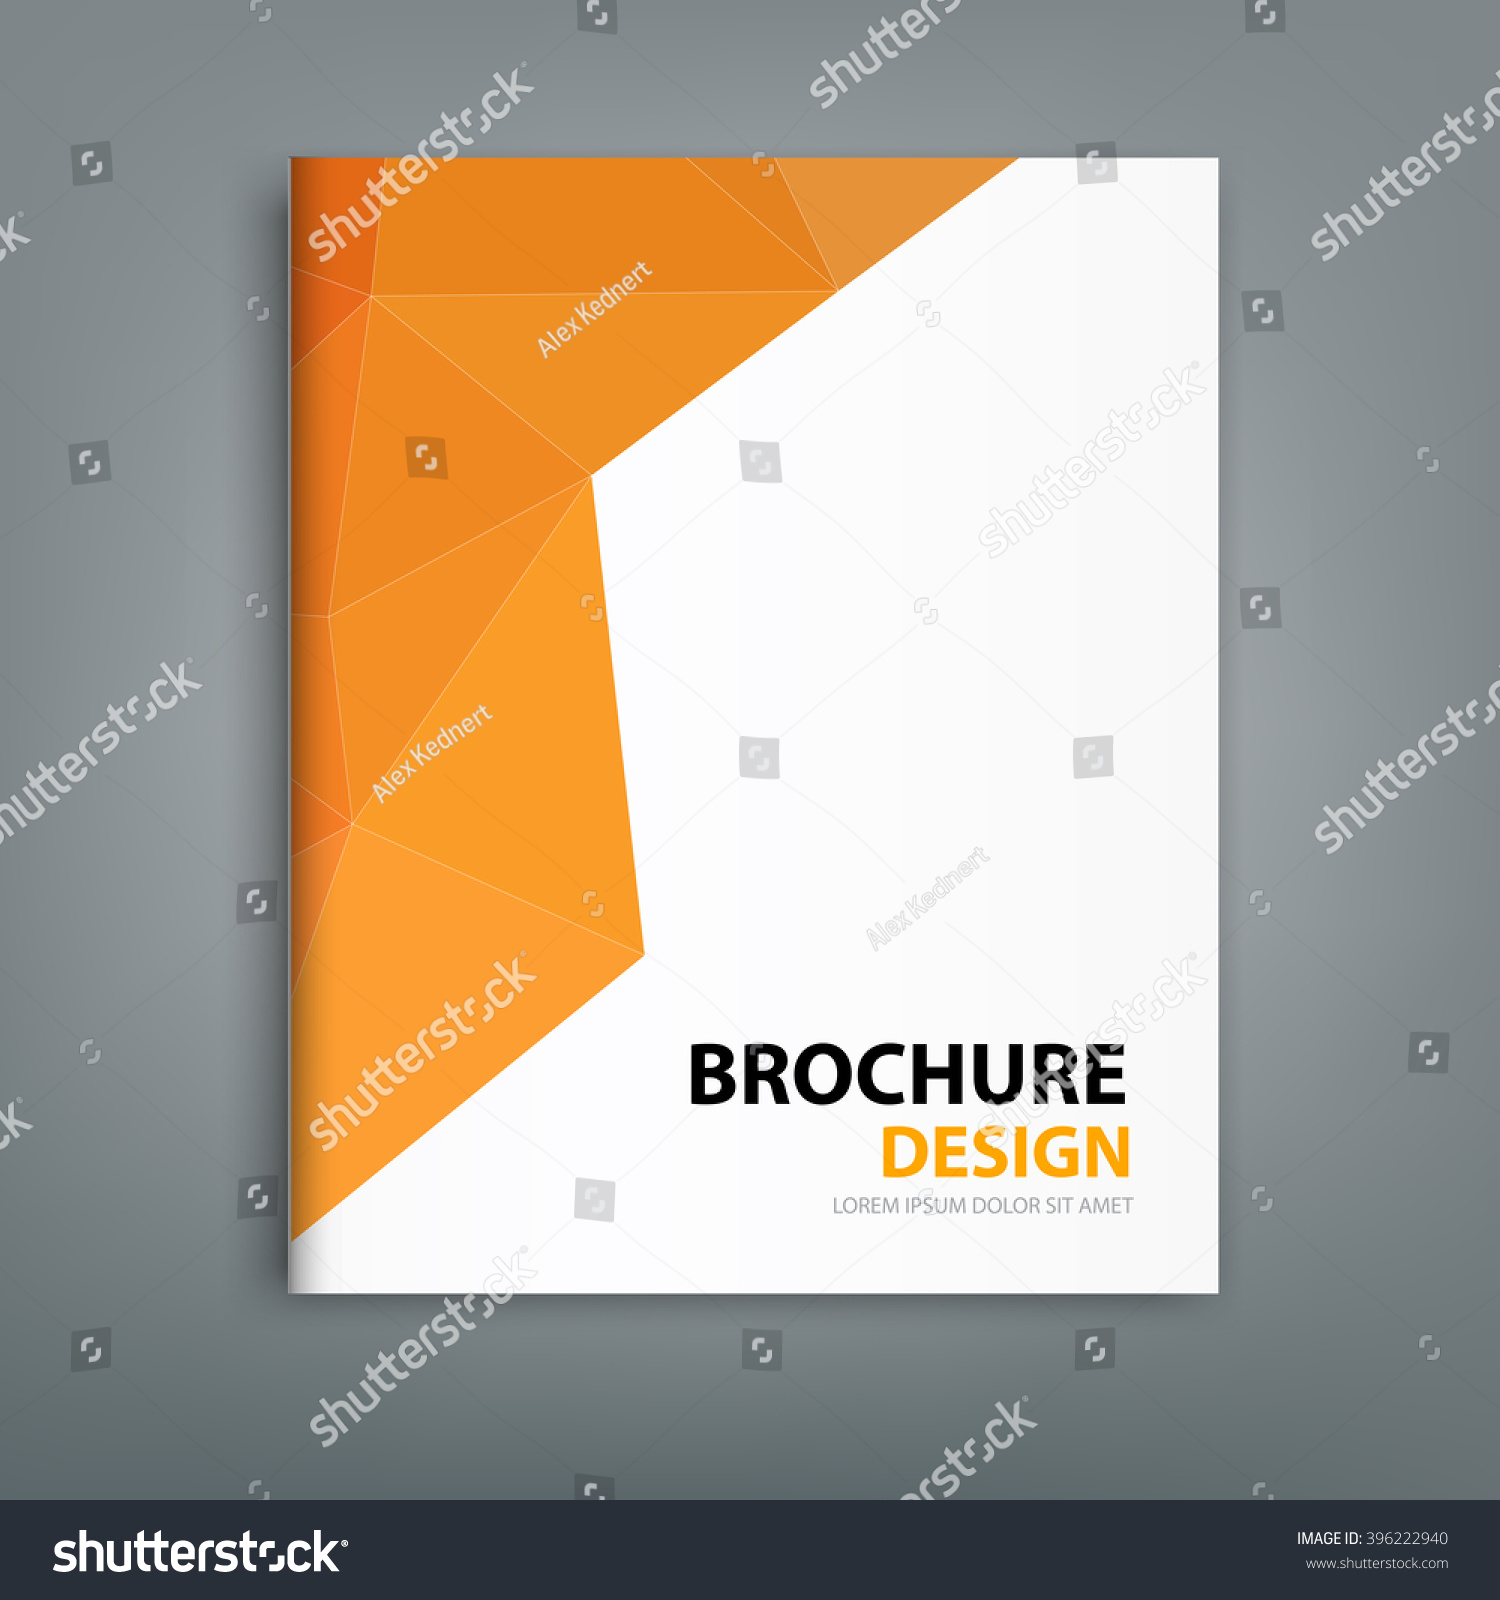 Modern Book Cover Designs : Modern brochure cover design background professional book